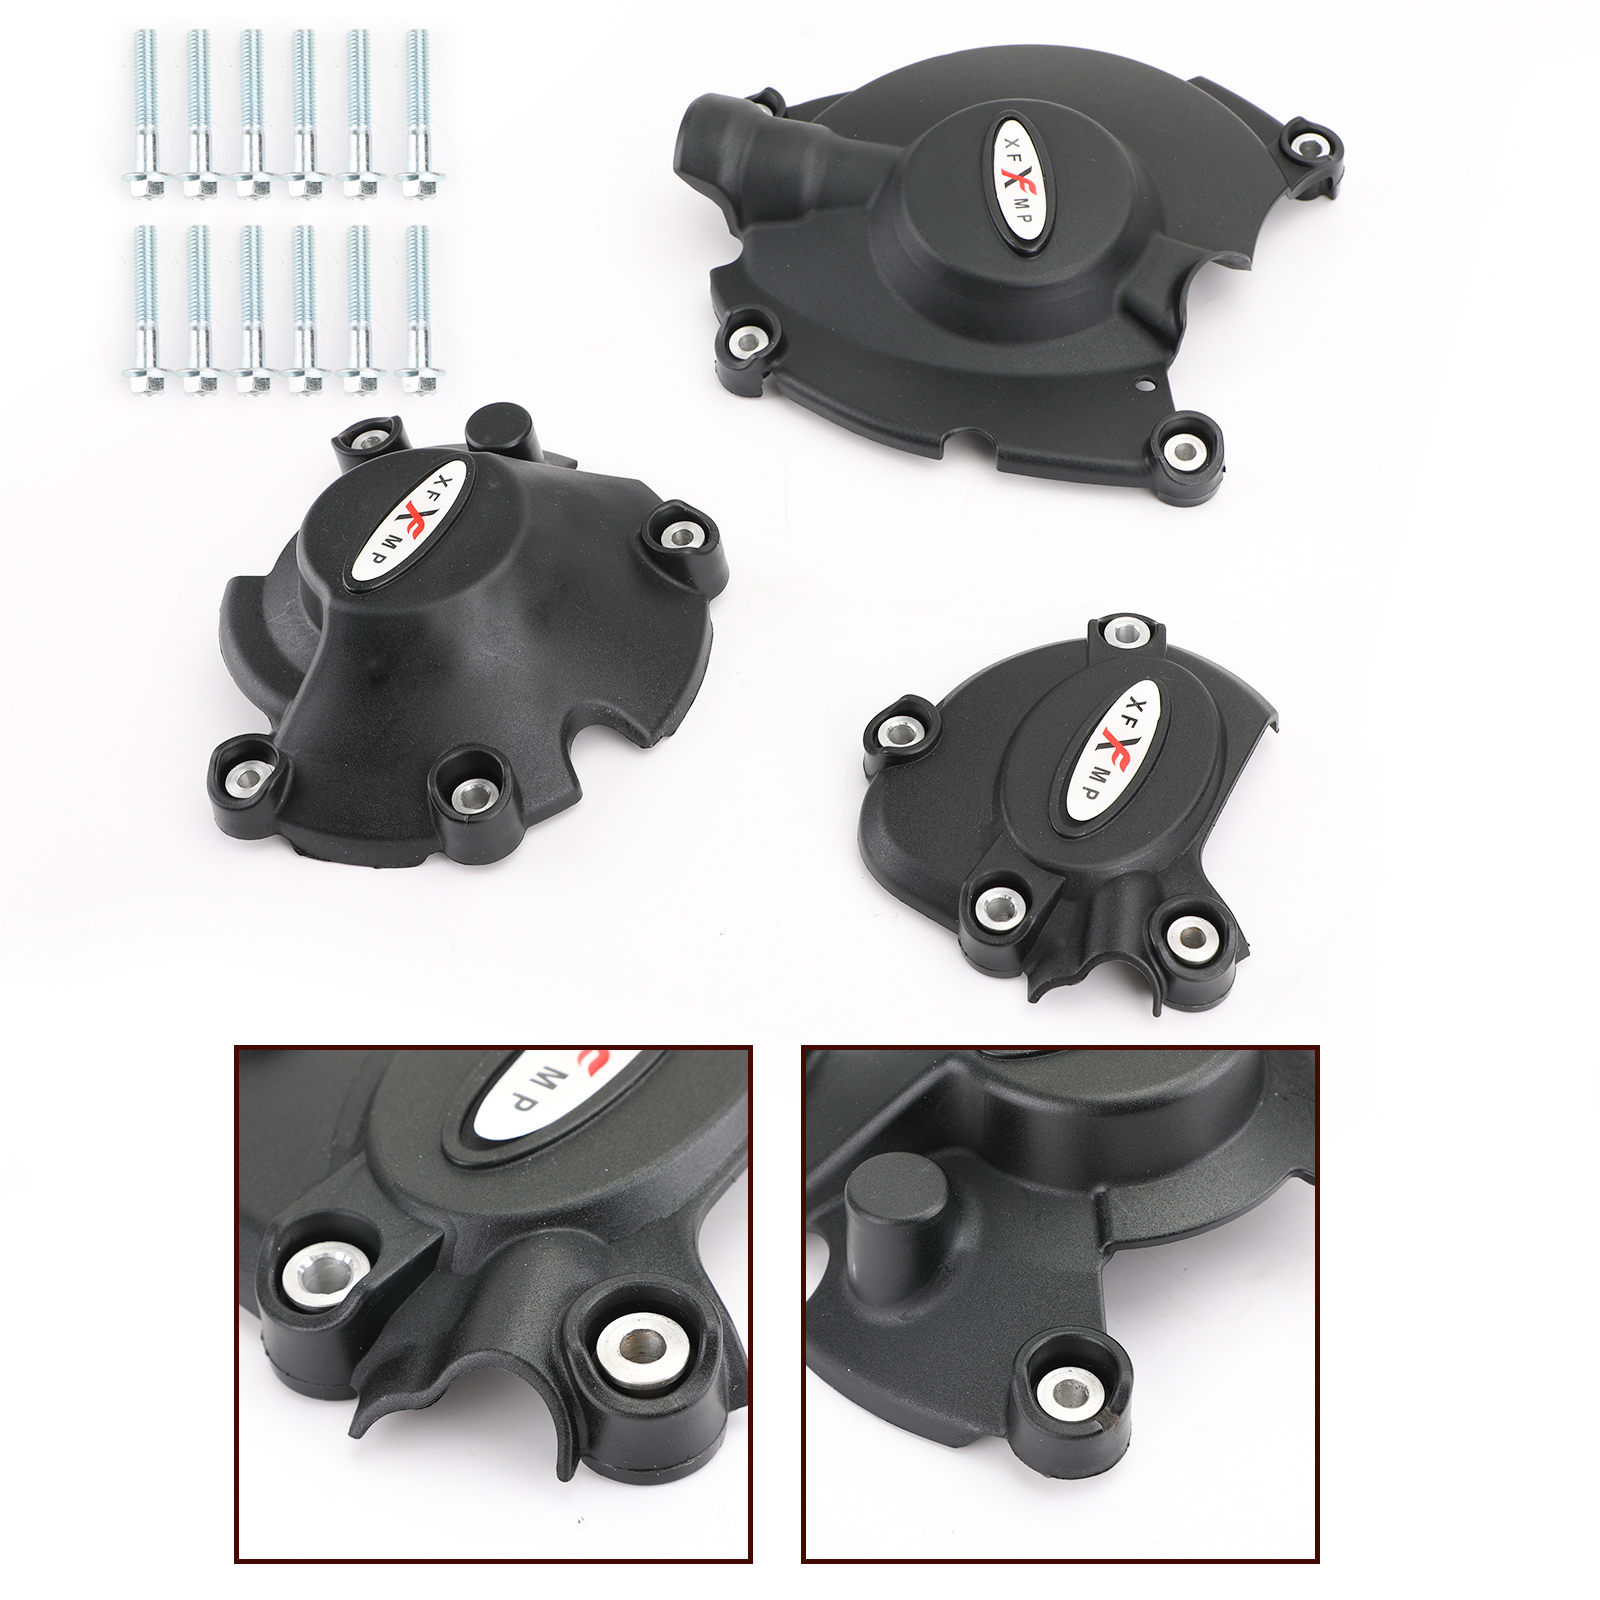 Artudatech Stator Engine Alternator Clutch Pulse Cover Guard For <font><b>Yamaha</b></font> YZF R1 2015 MT10 <font><b>MT</b></font> <font><b>10</b></font> 2016 Accessories image